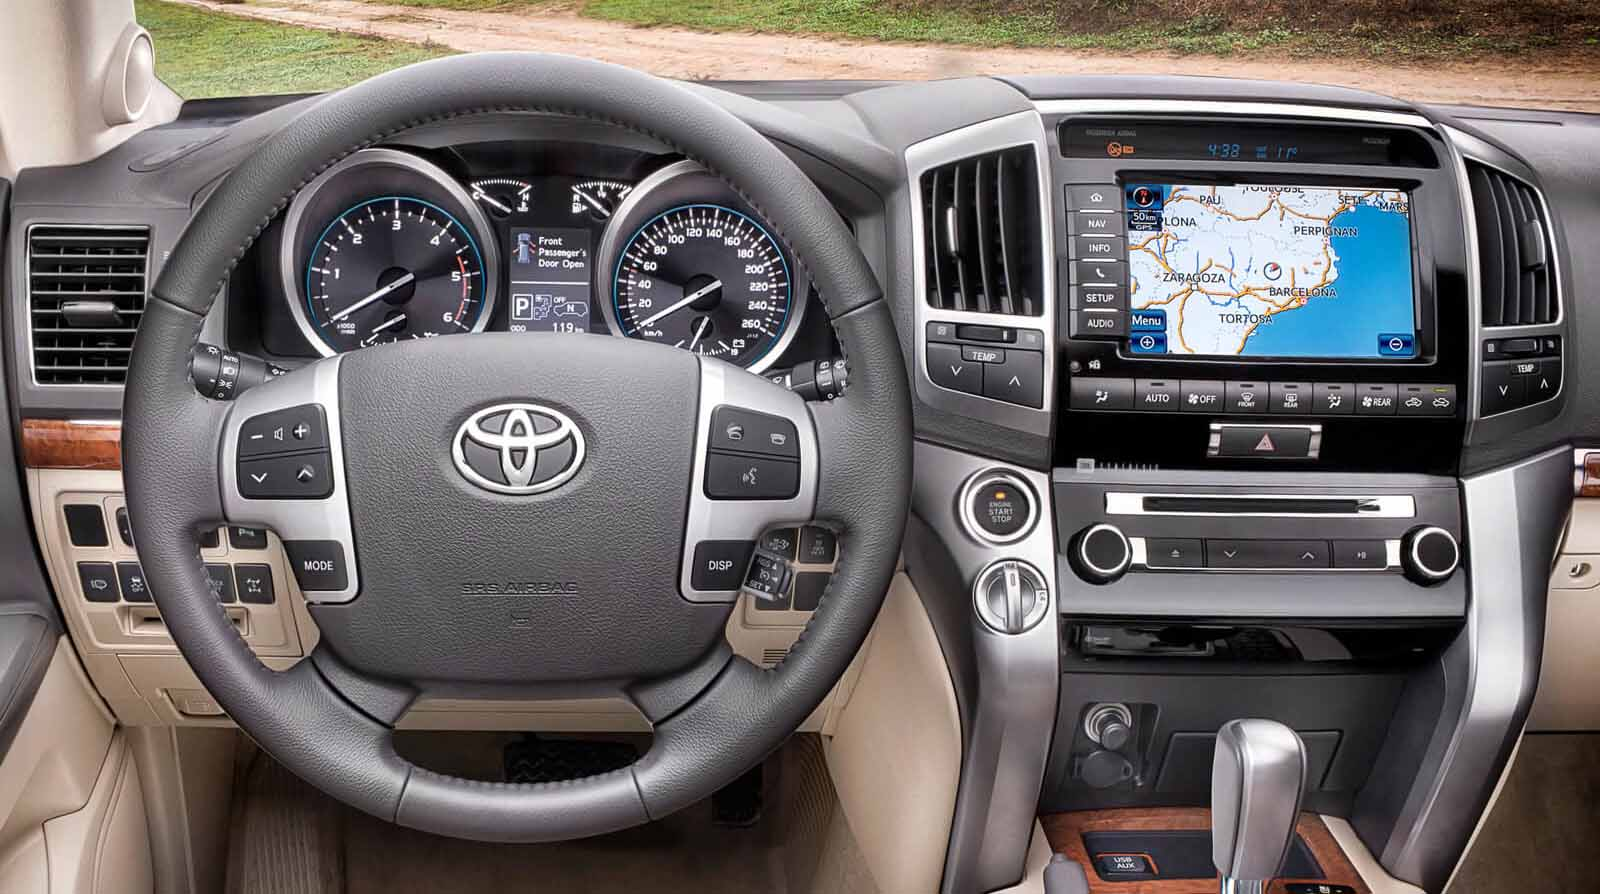 Toyota Land Cruiser head unit